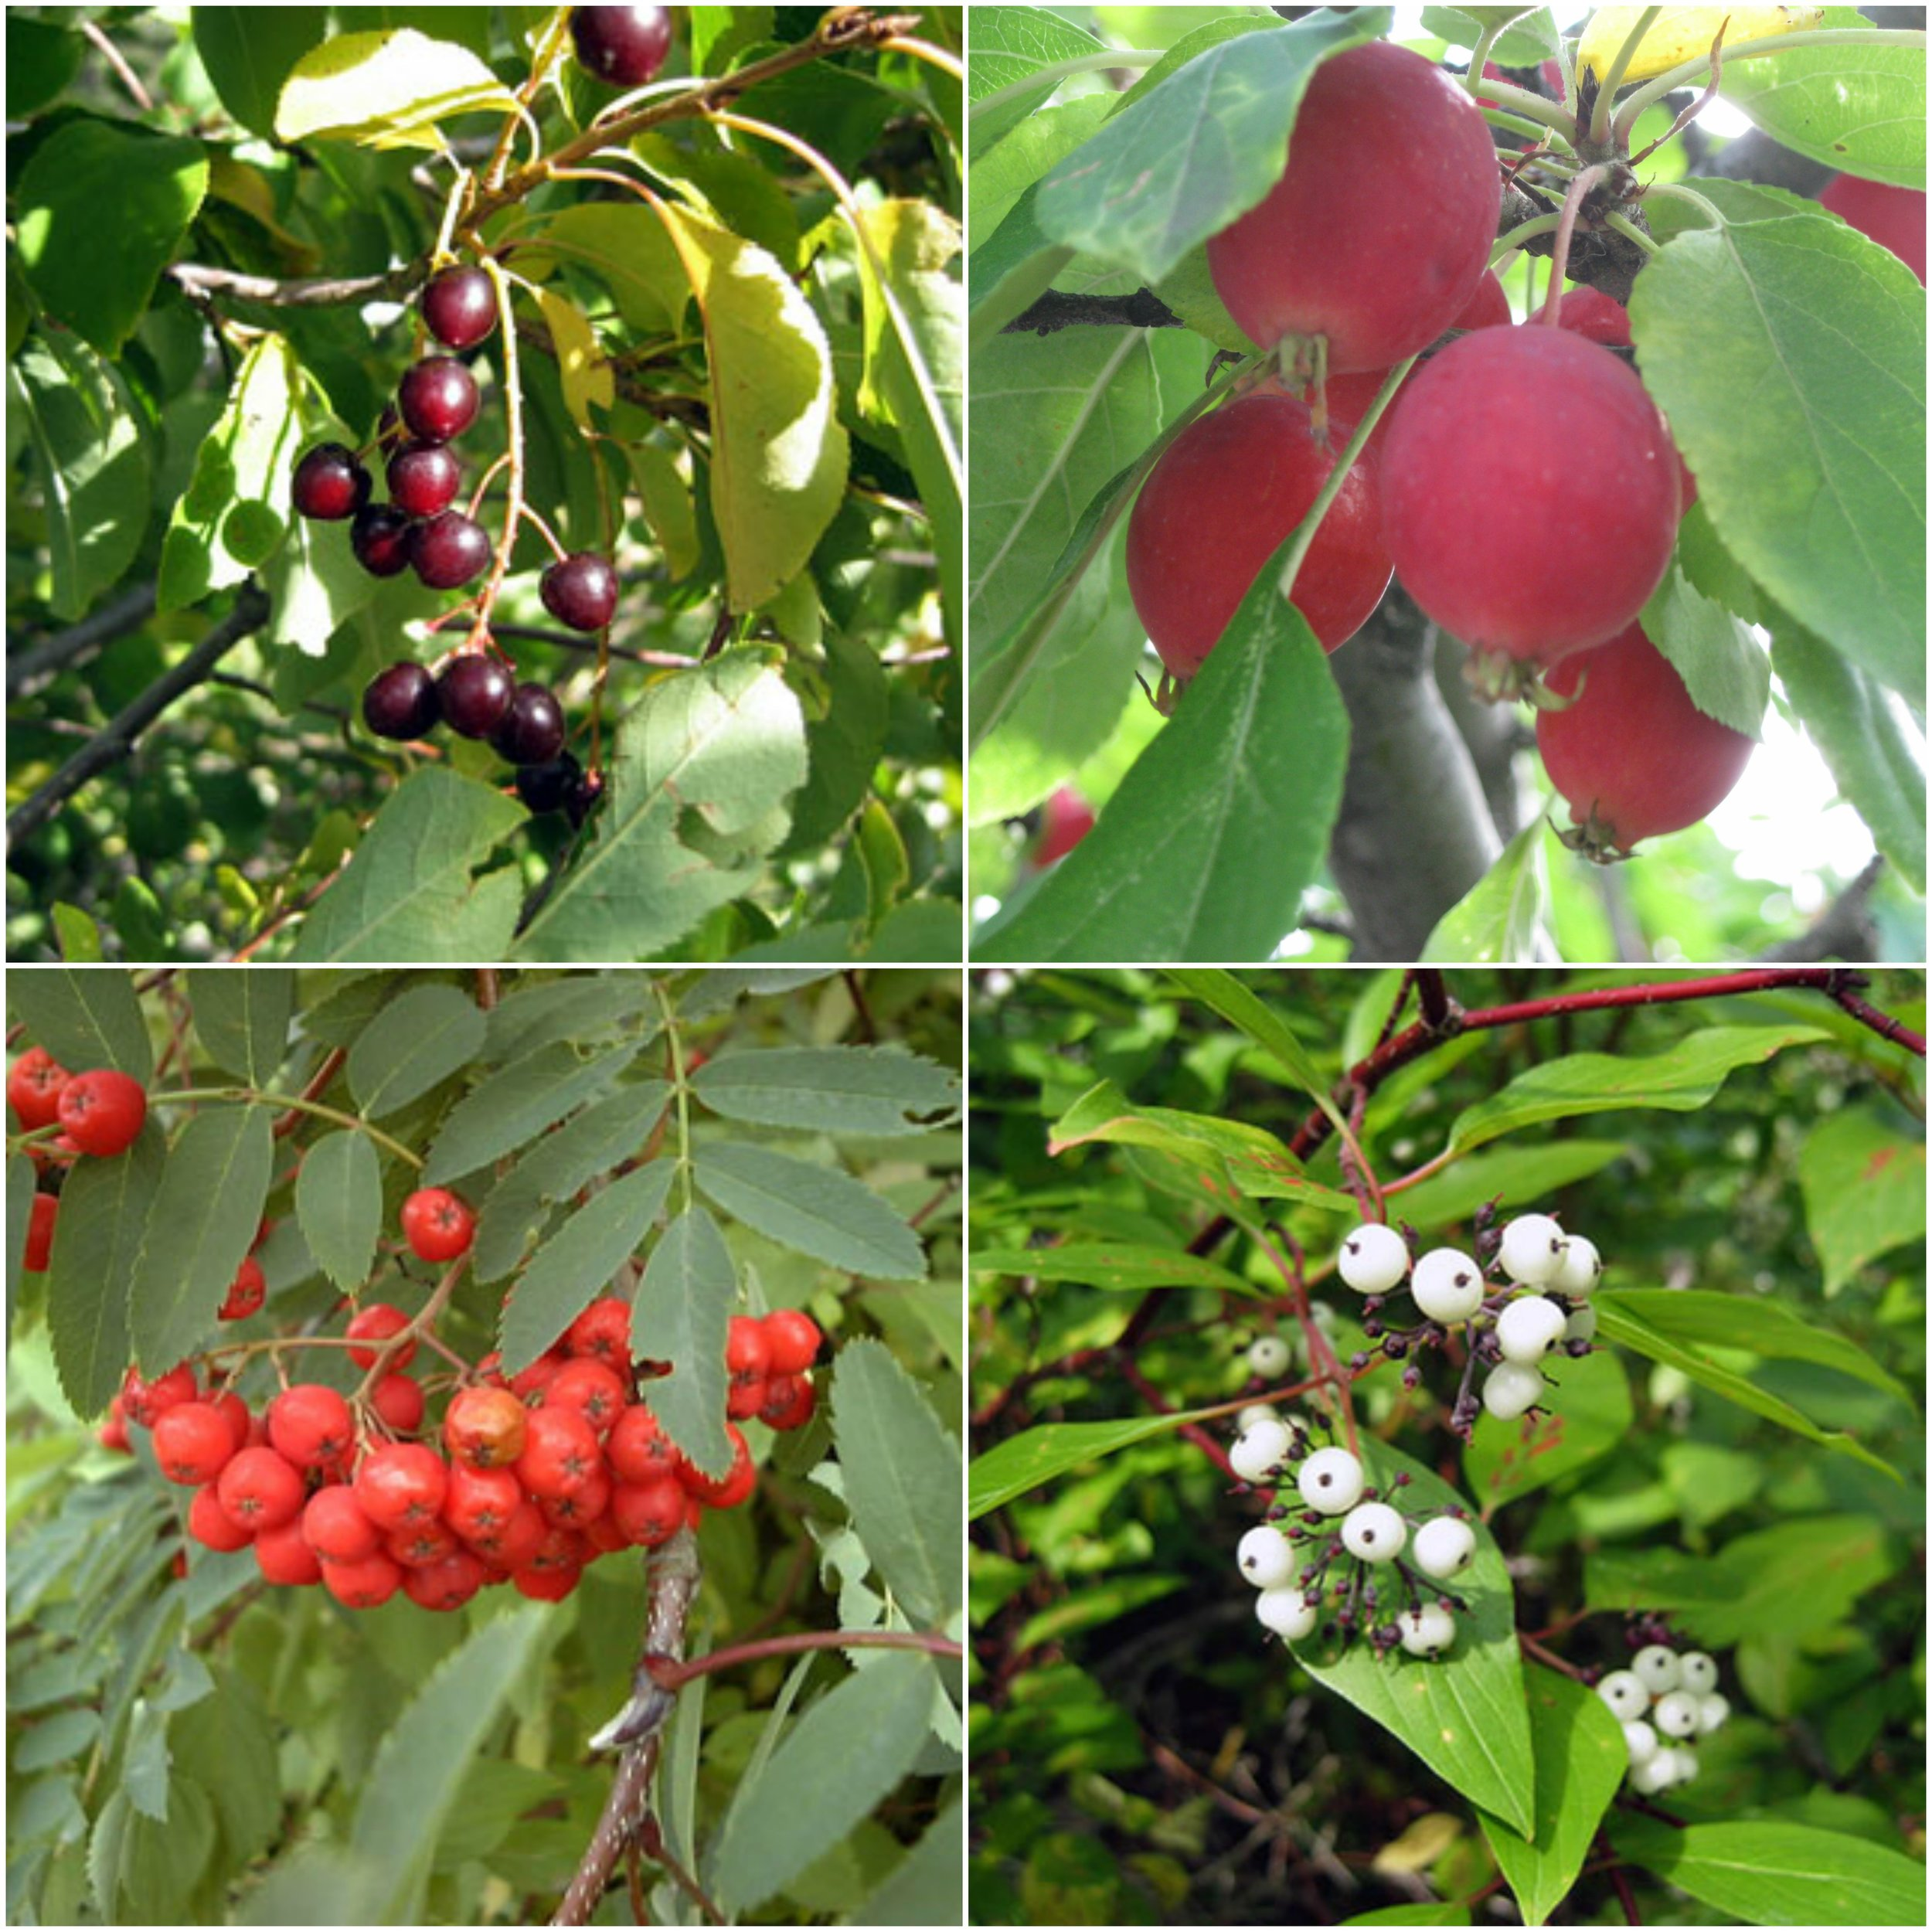 These are common fruits/berries that attract bears into residential areas (pictured clockwise from top left); Chokecherry, Crabapples, Dogwood and Mountain Ash.